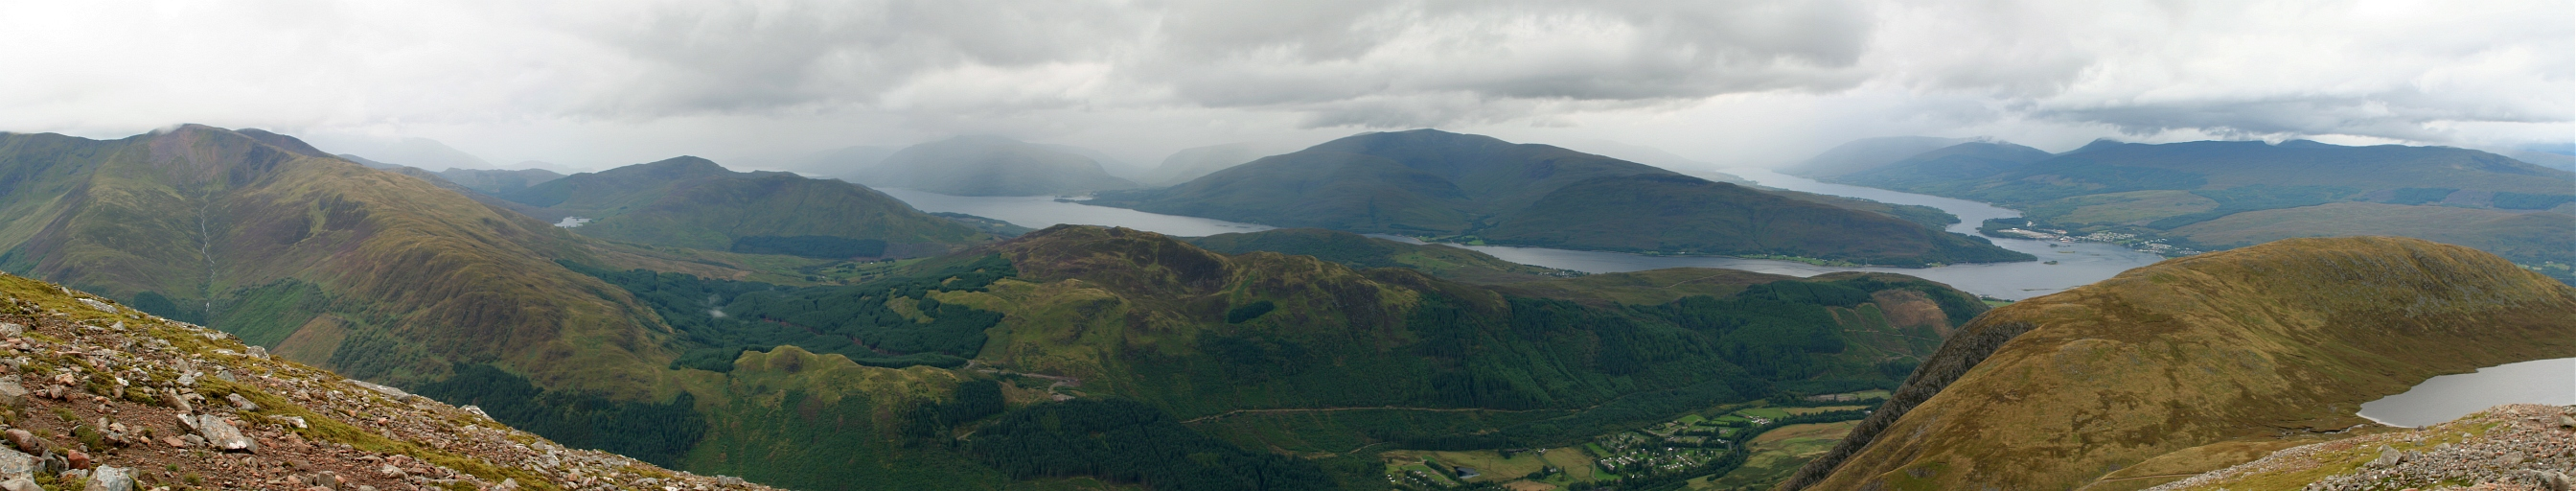 Panorama from the western slope of Ben Nevis, the highest mountain in the British Isles